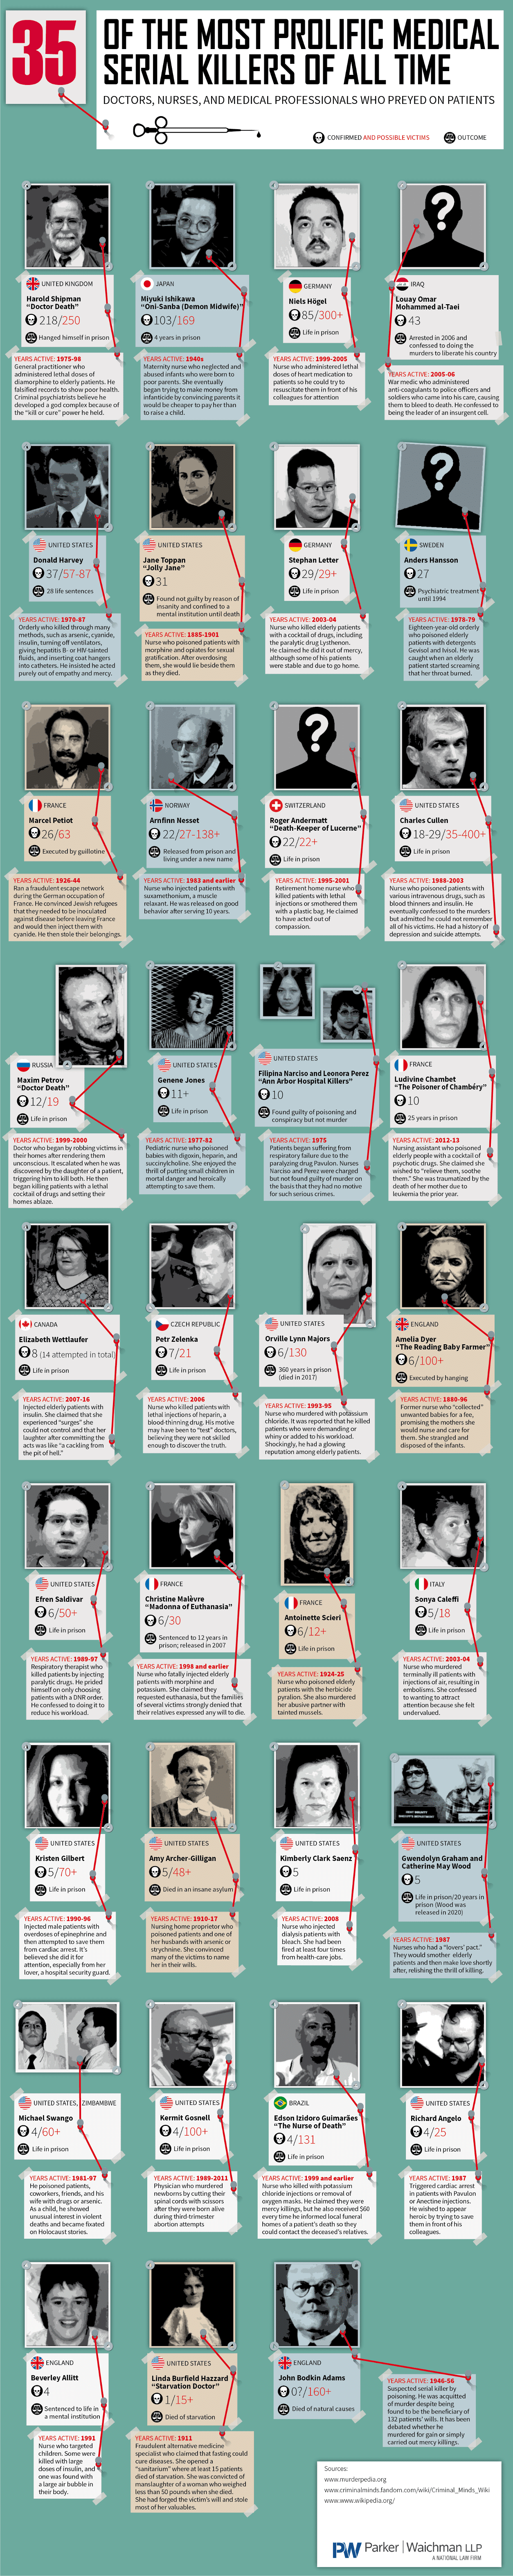 The Most Prolific Medical Serial Killers Of All Time #infographic